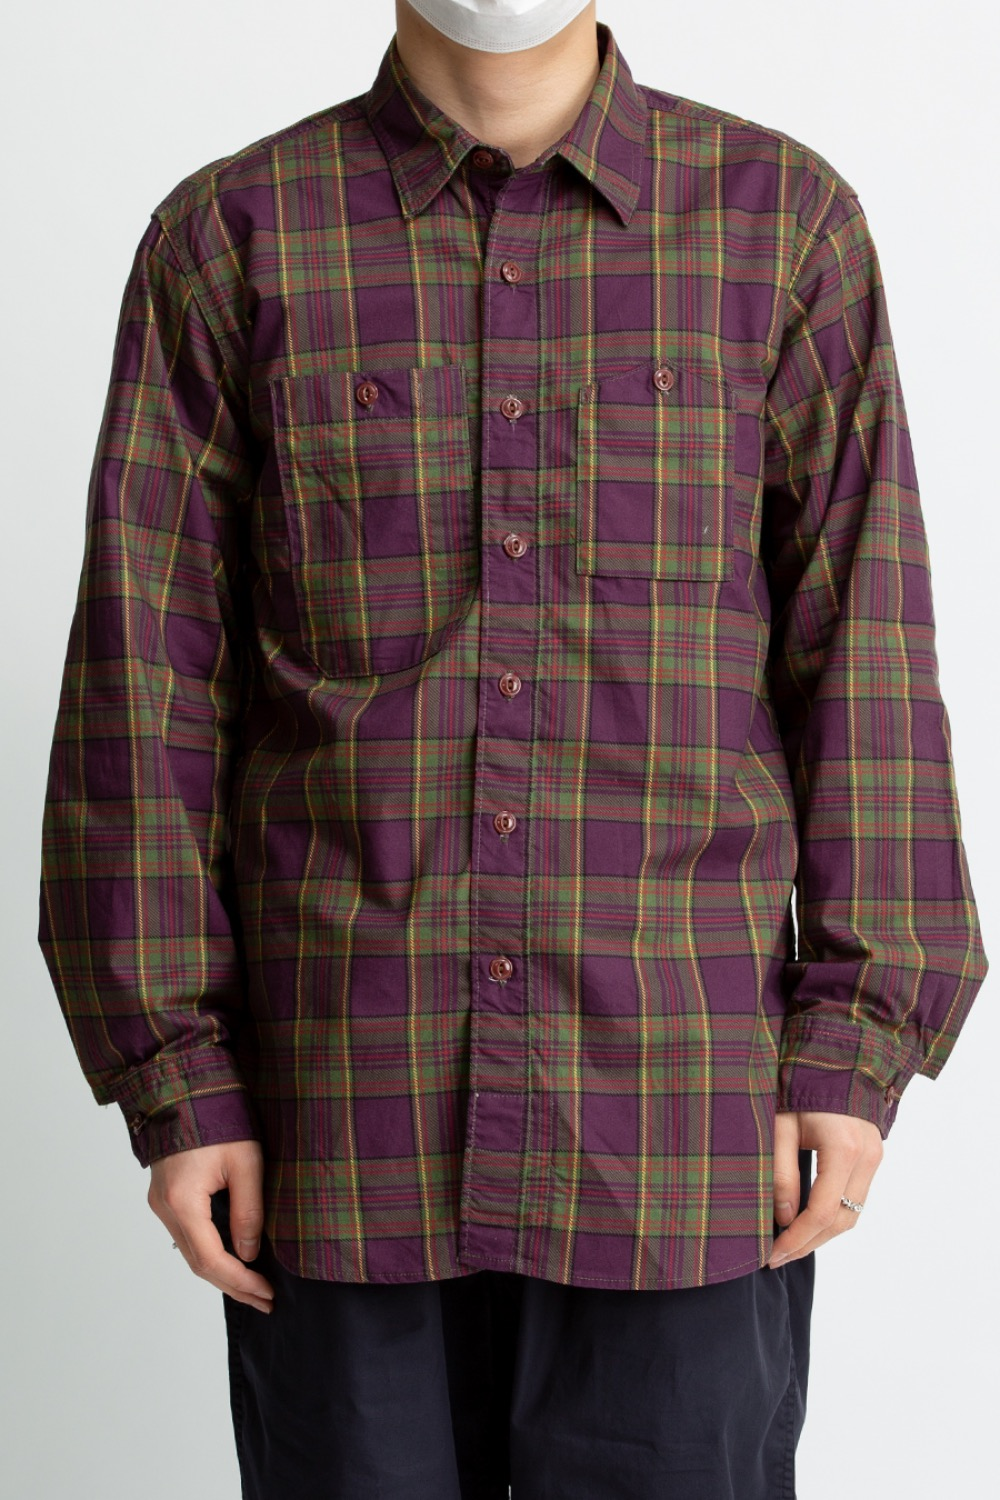 WORK SHIRT PURPLE/GREEN COTTON PRINTED PLAID